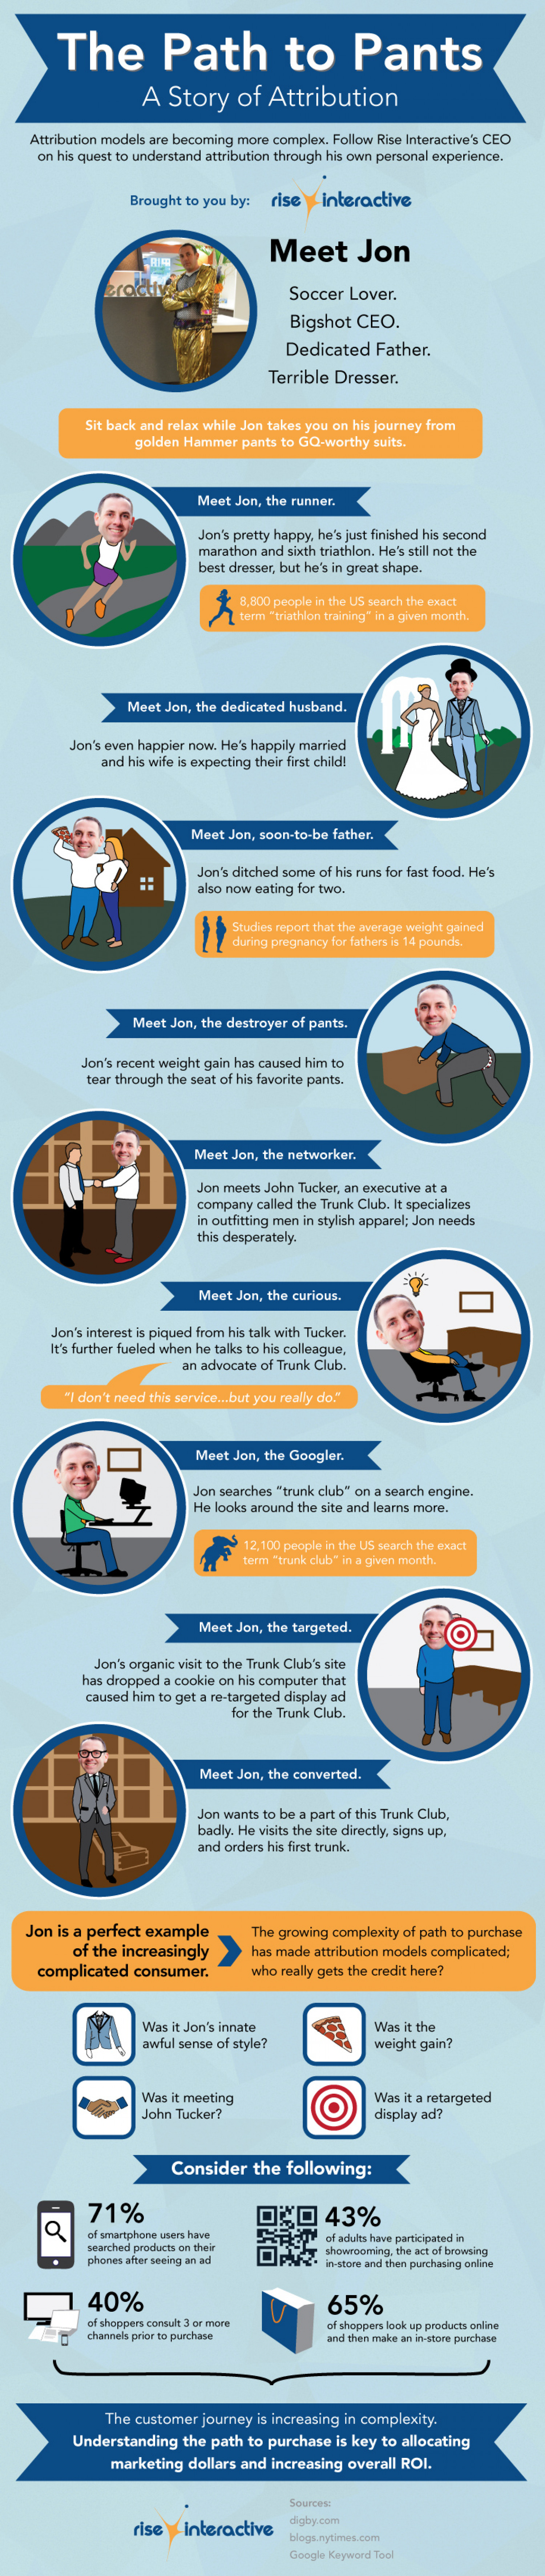 The Path to Pants- A story of Attribution Infographic